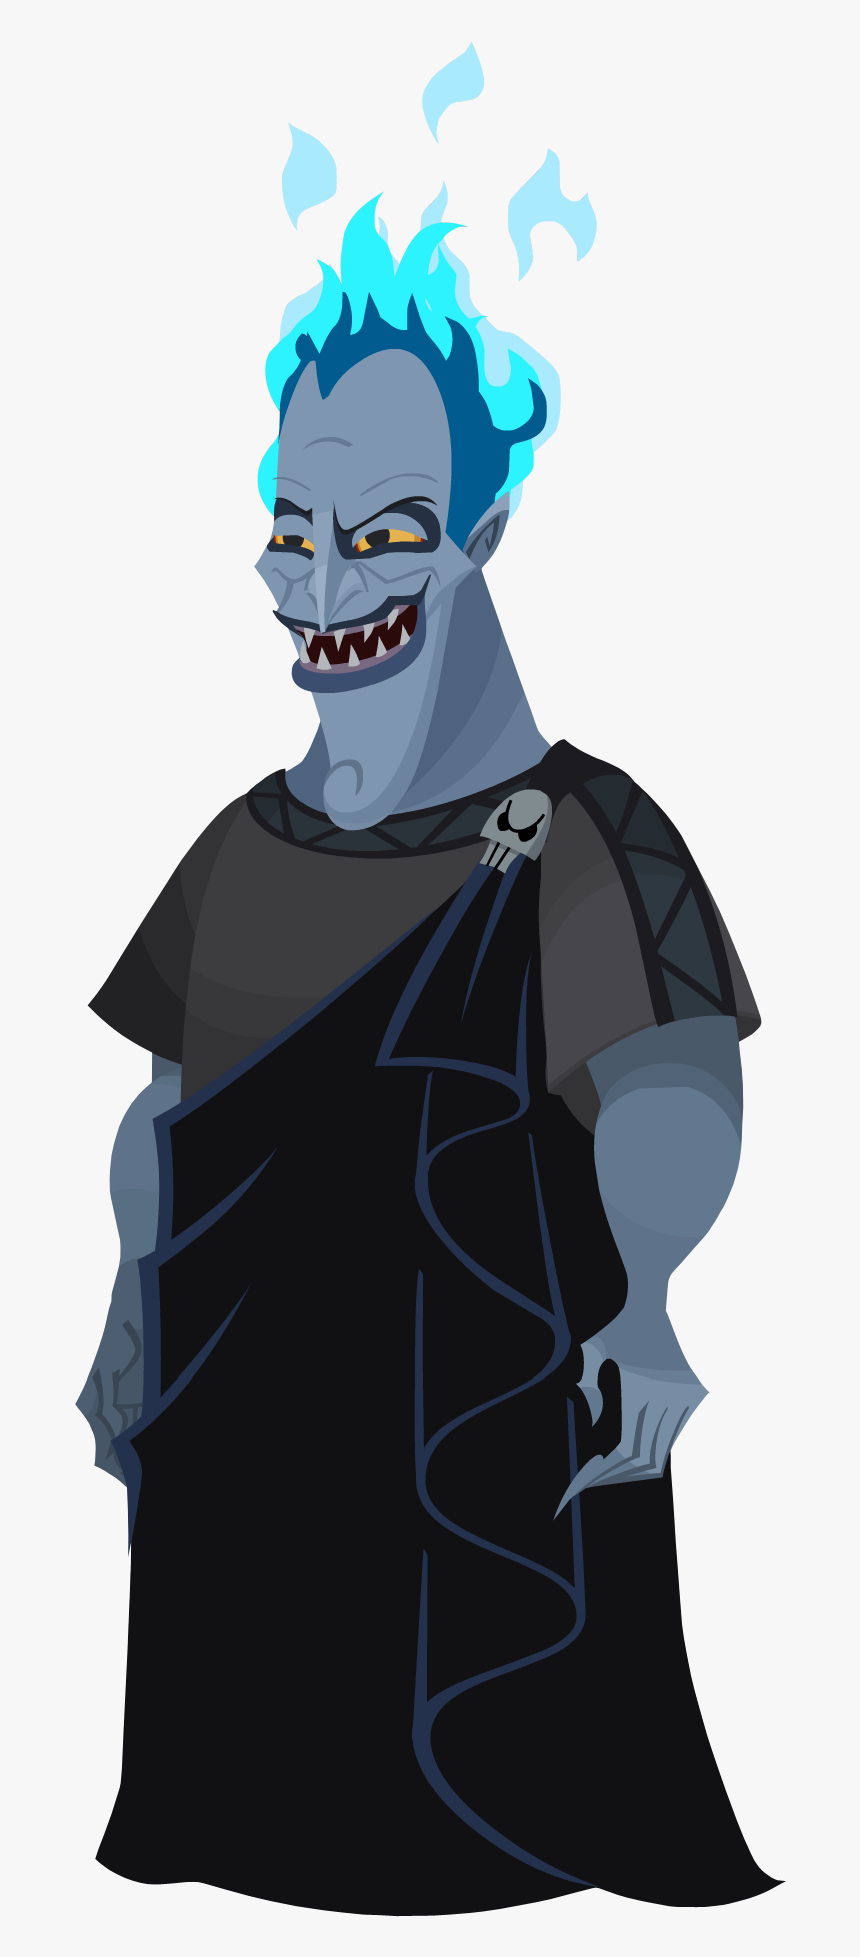 Hades Png - Kingdom Hearts Union X Hades, Transparent Png, Free Download